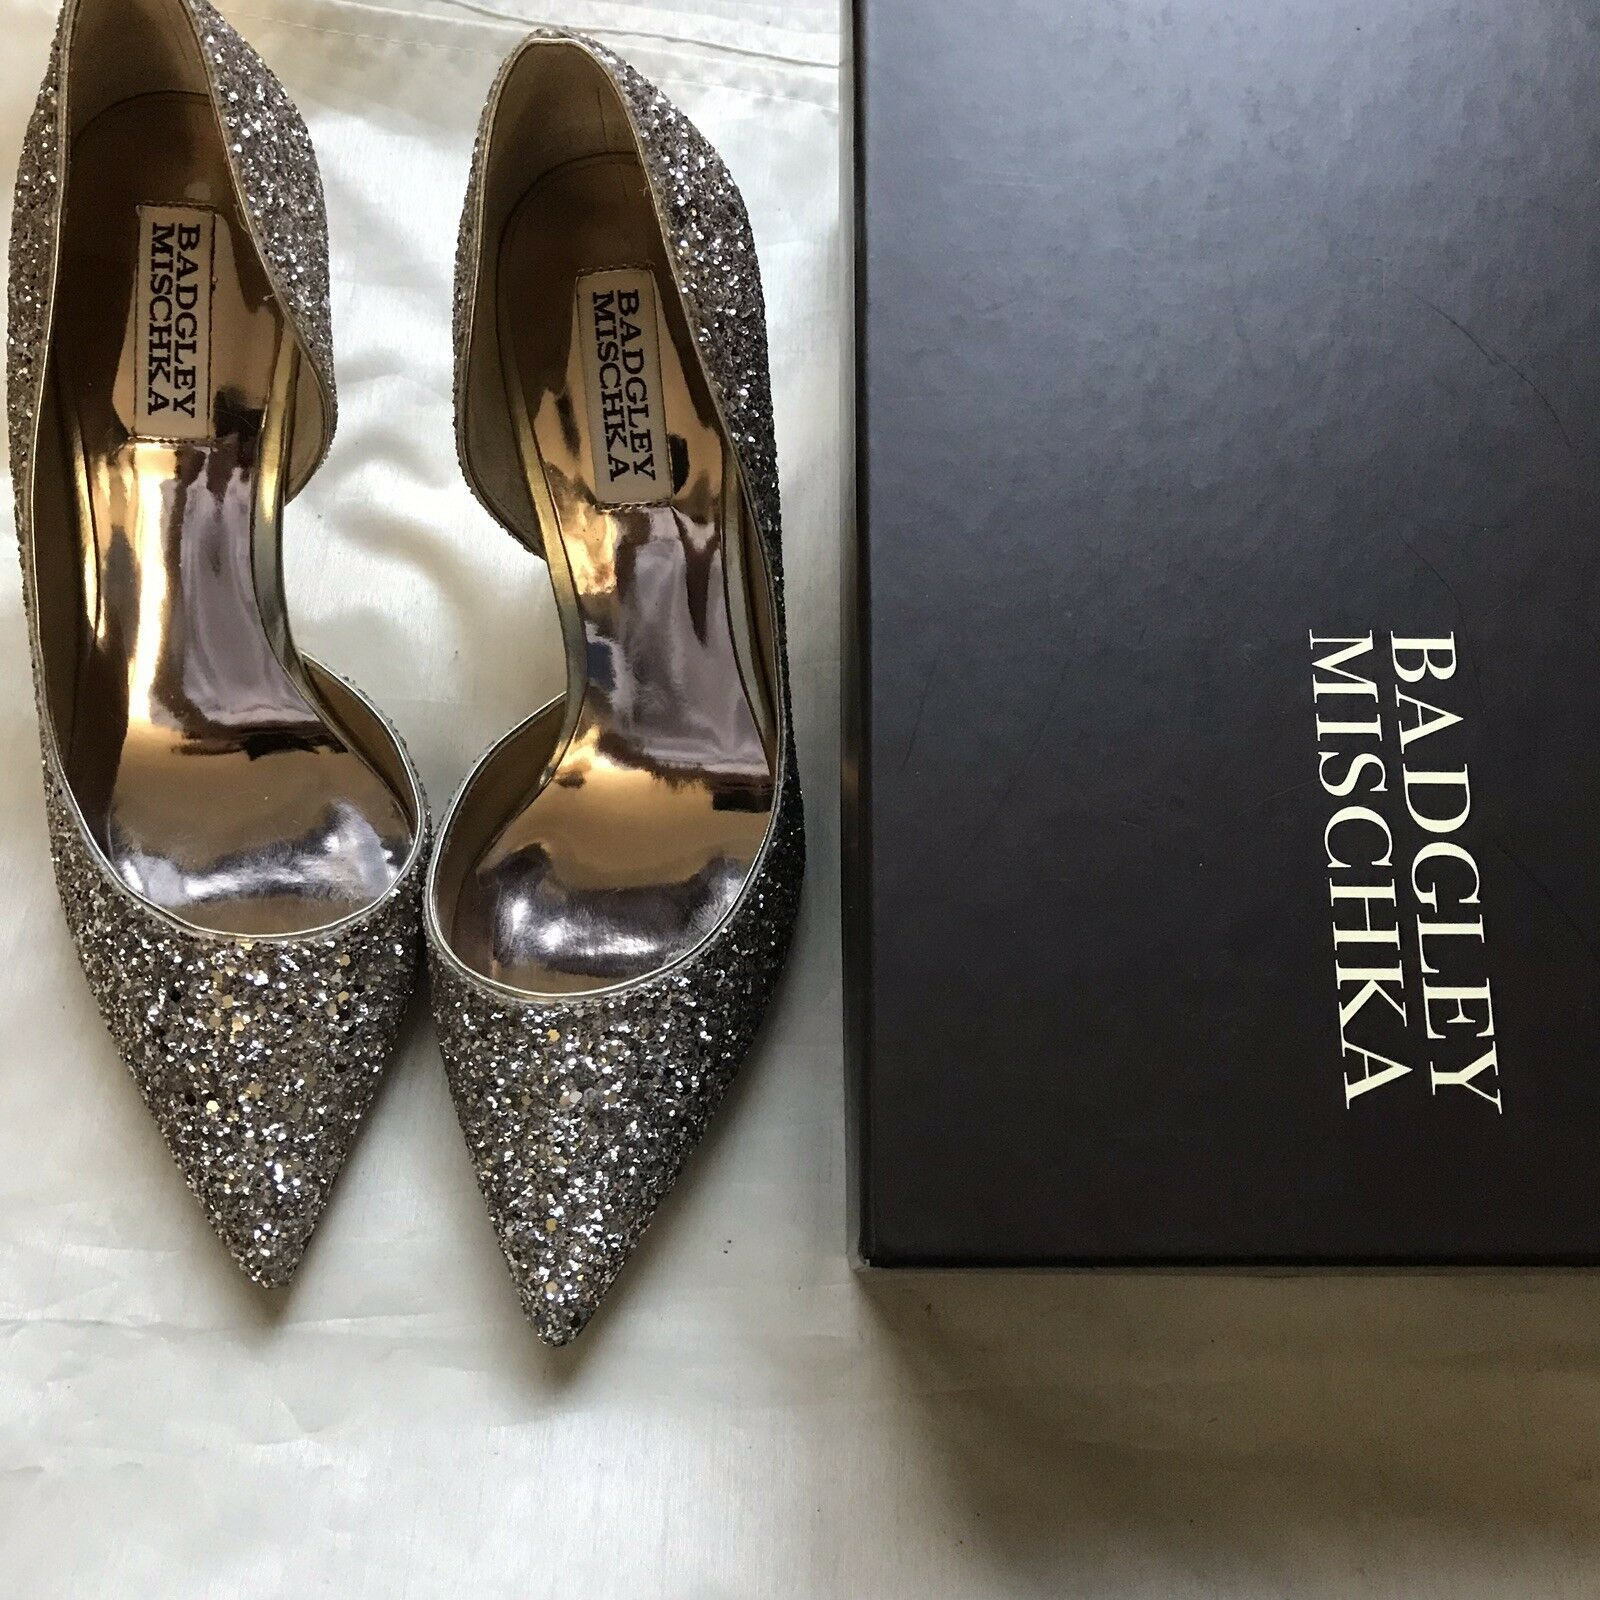 BADGLEY MISCHKA Daisy Glitter High Heel scarpe Dimensione 7.5